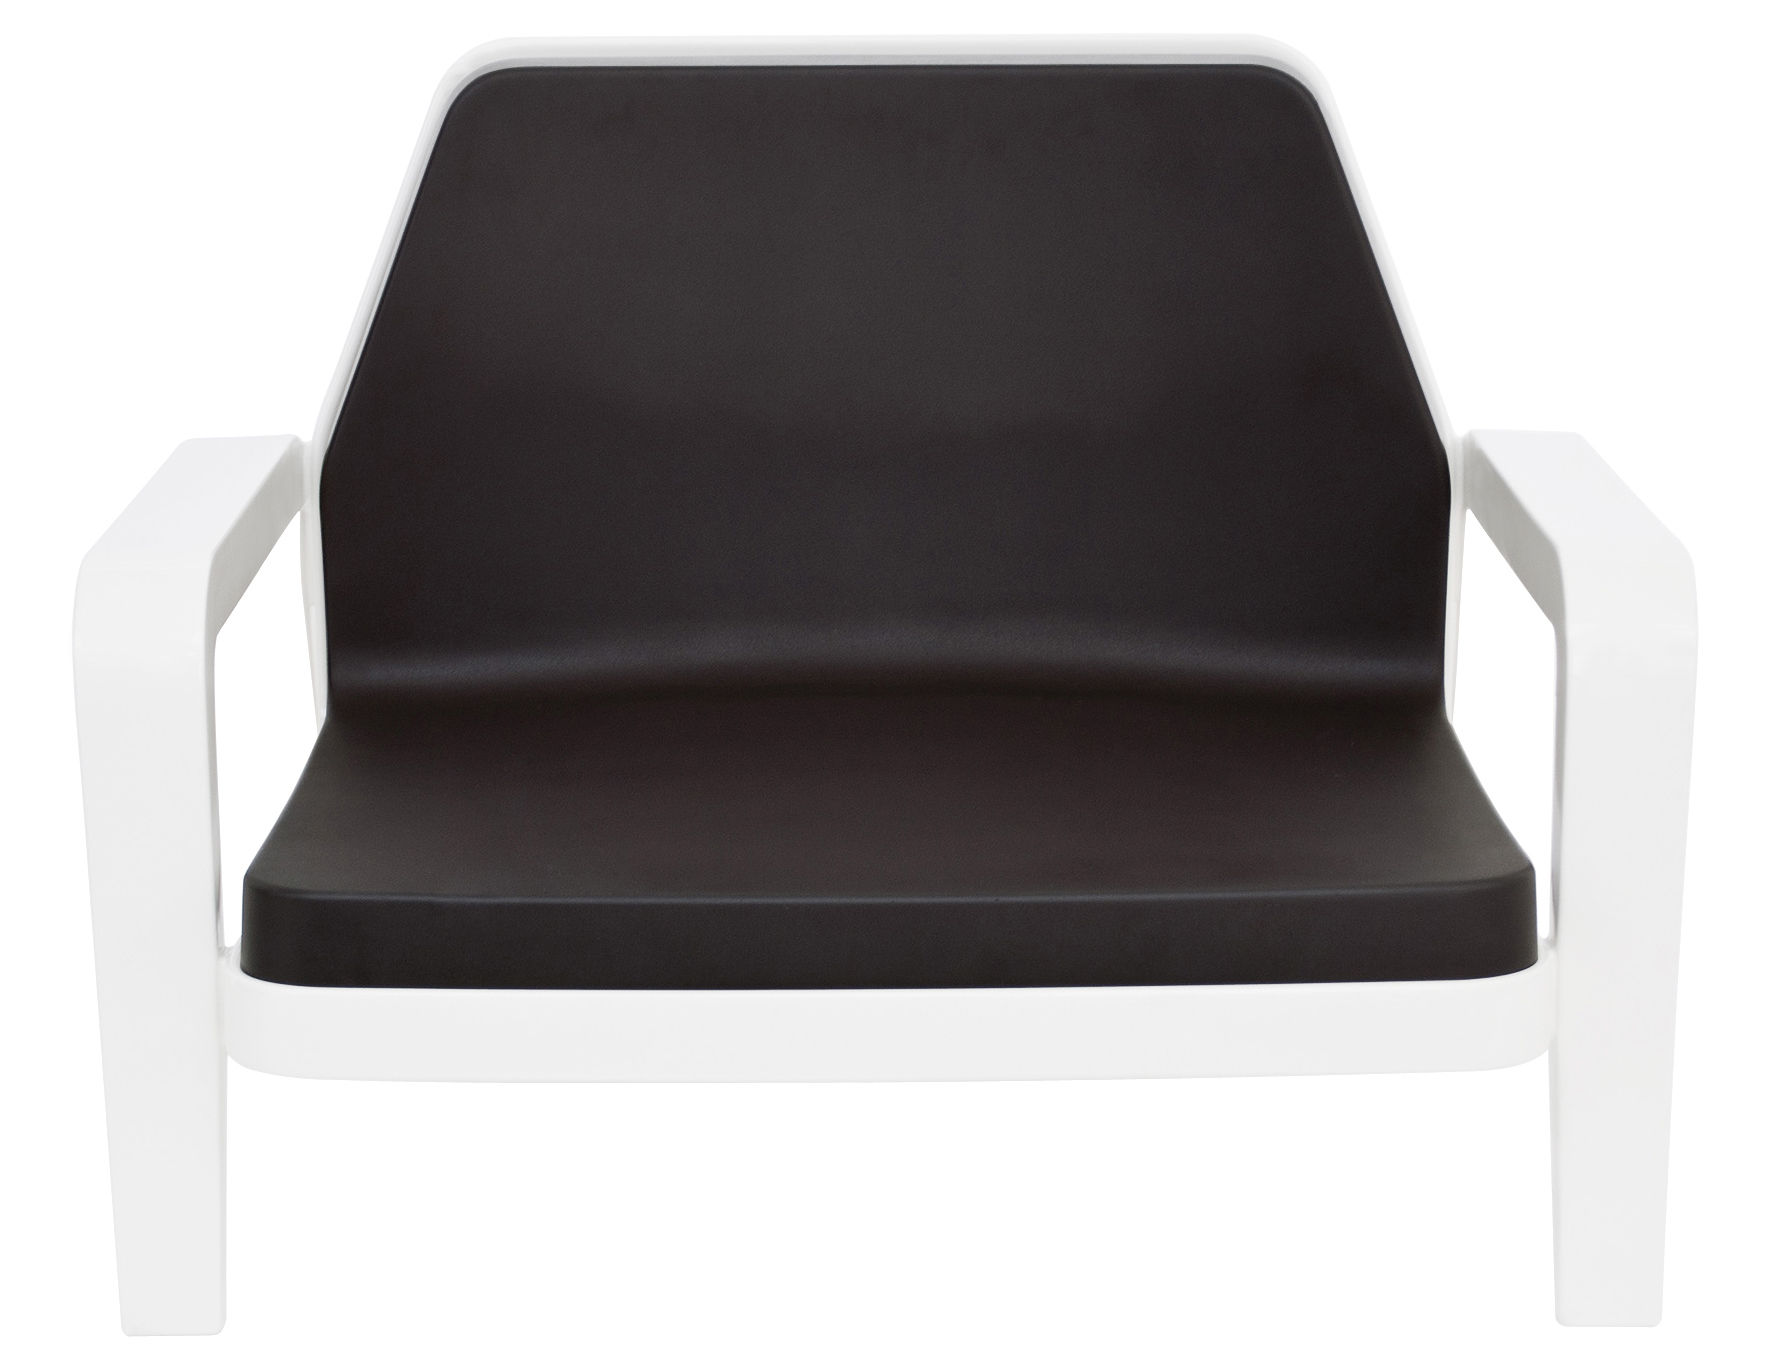 Furniture - Armchairs - America Low armchair by Slide - White structure /brown cushion - Polyurethane, Recyclable polyethylene